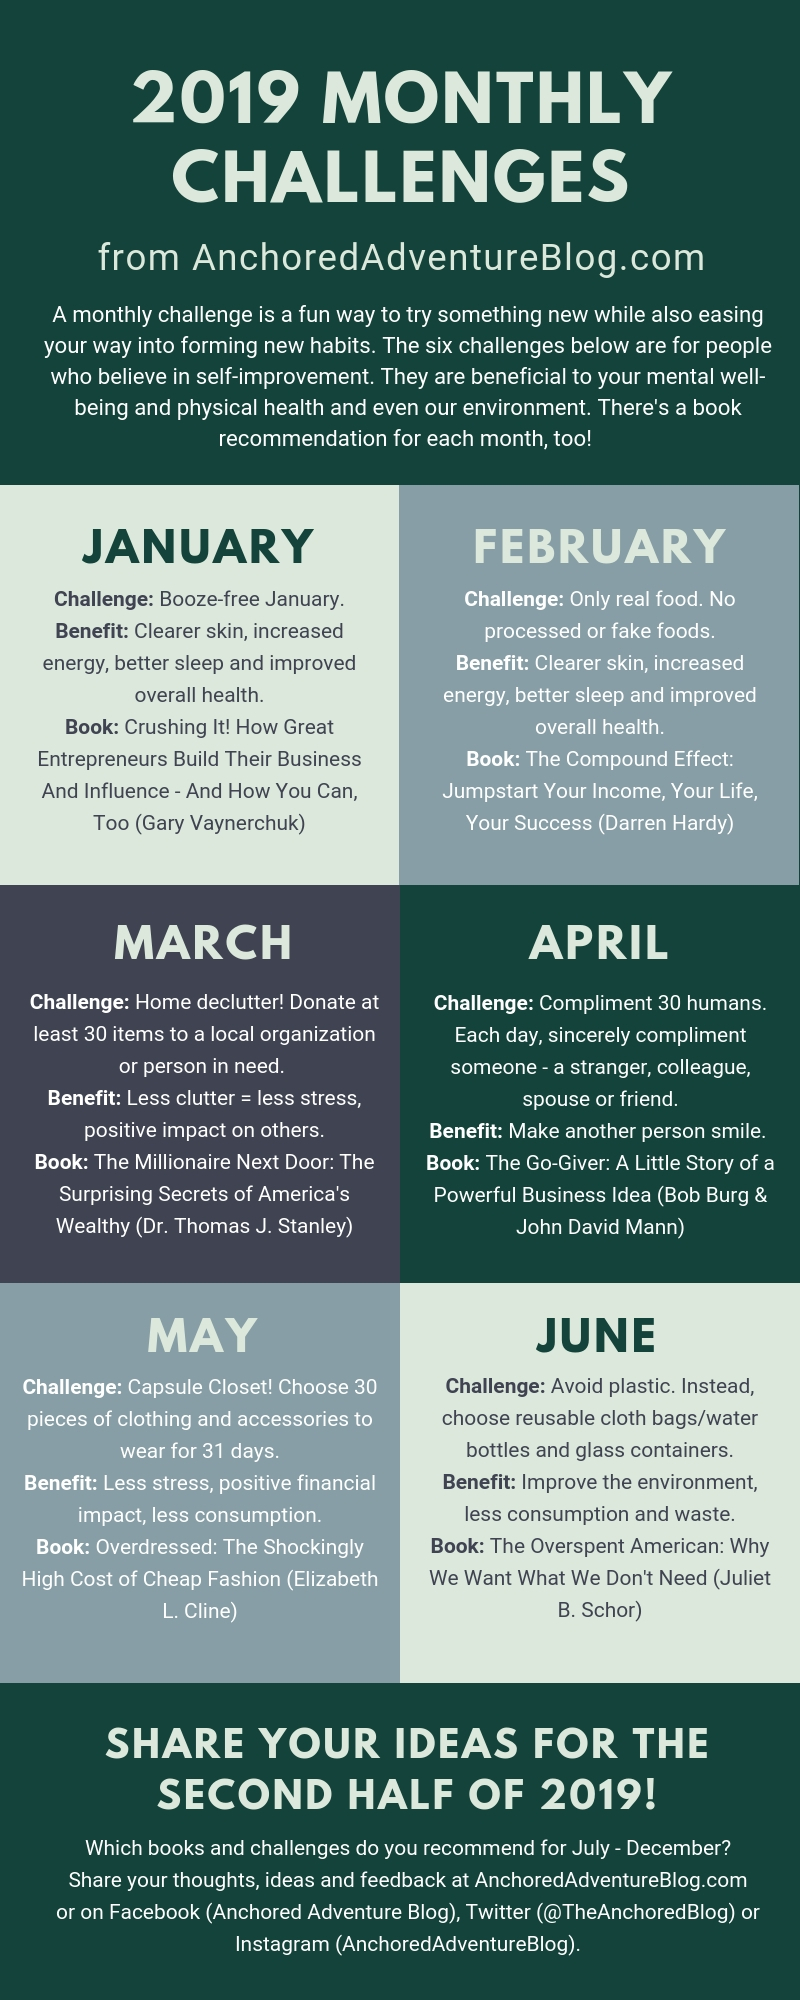 anchored adventure blog monthly challenge